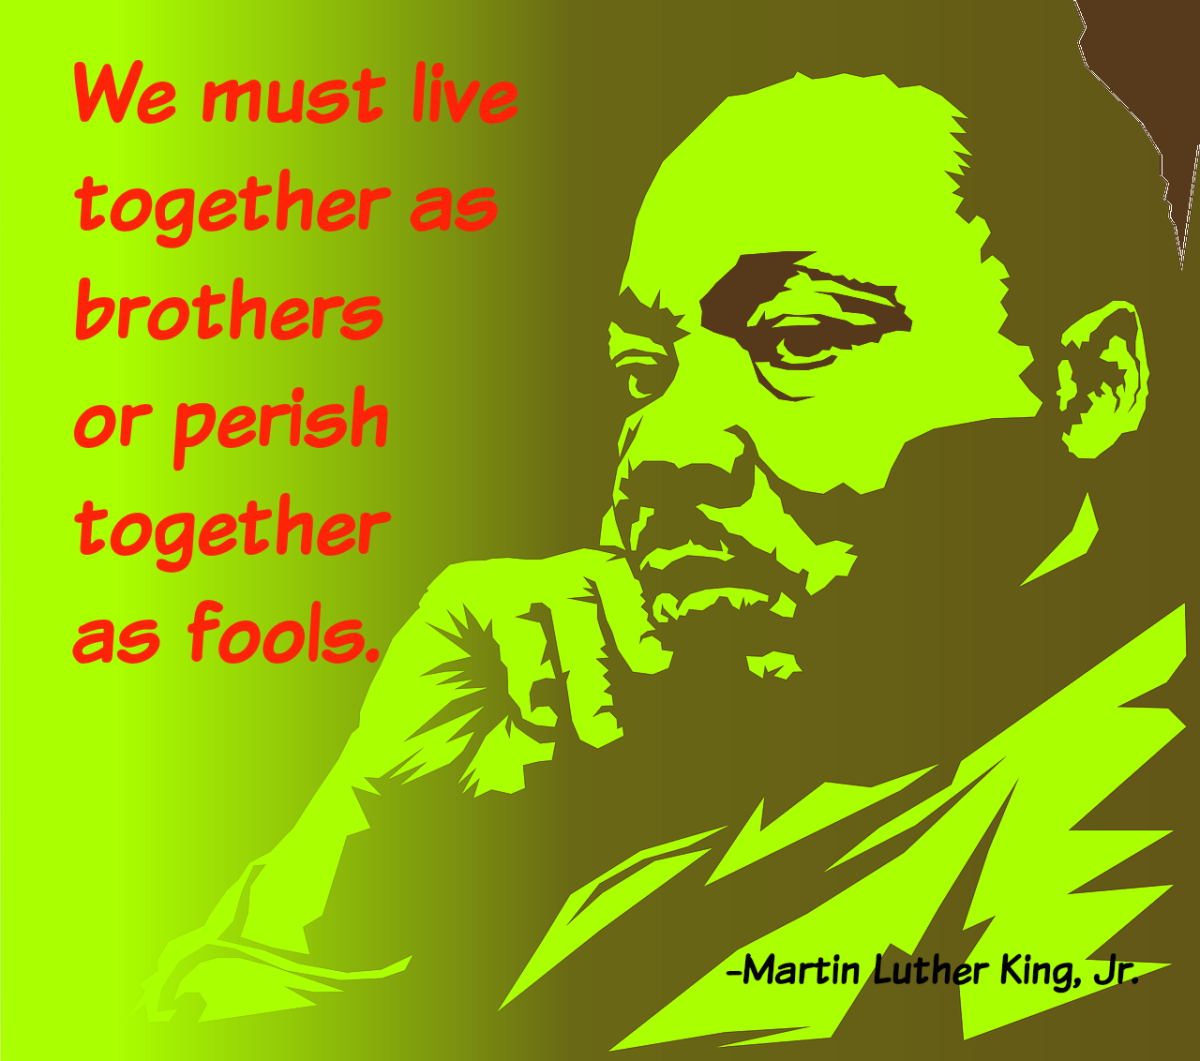 Martin Luther King, Jr. believed that we needed to learn to live together.